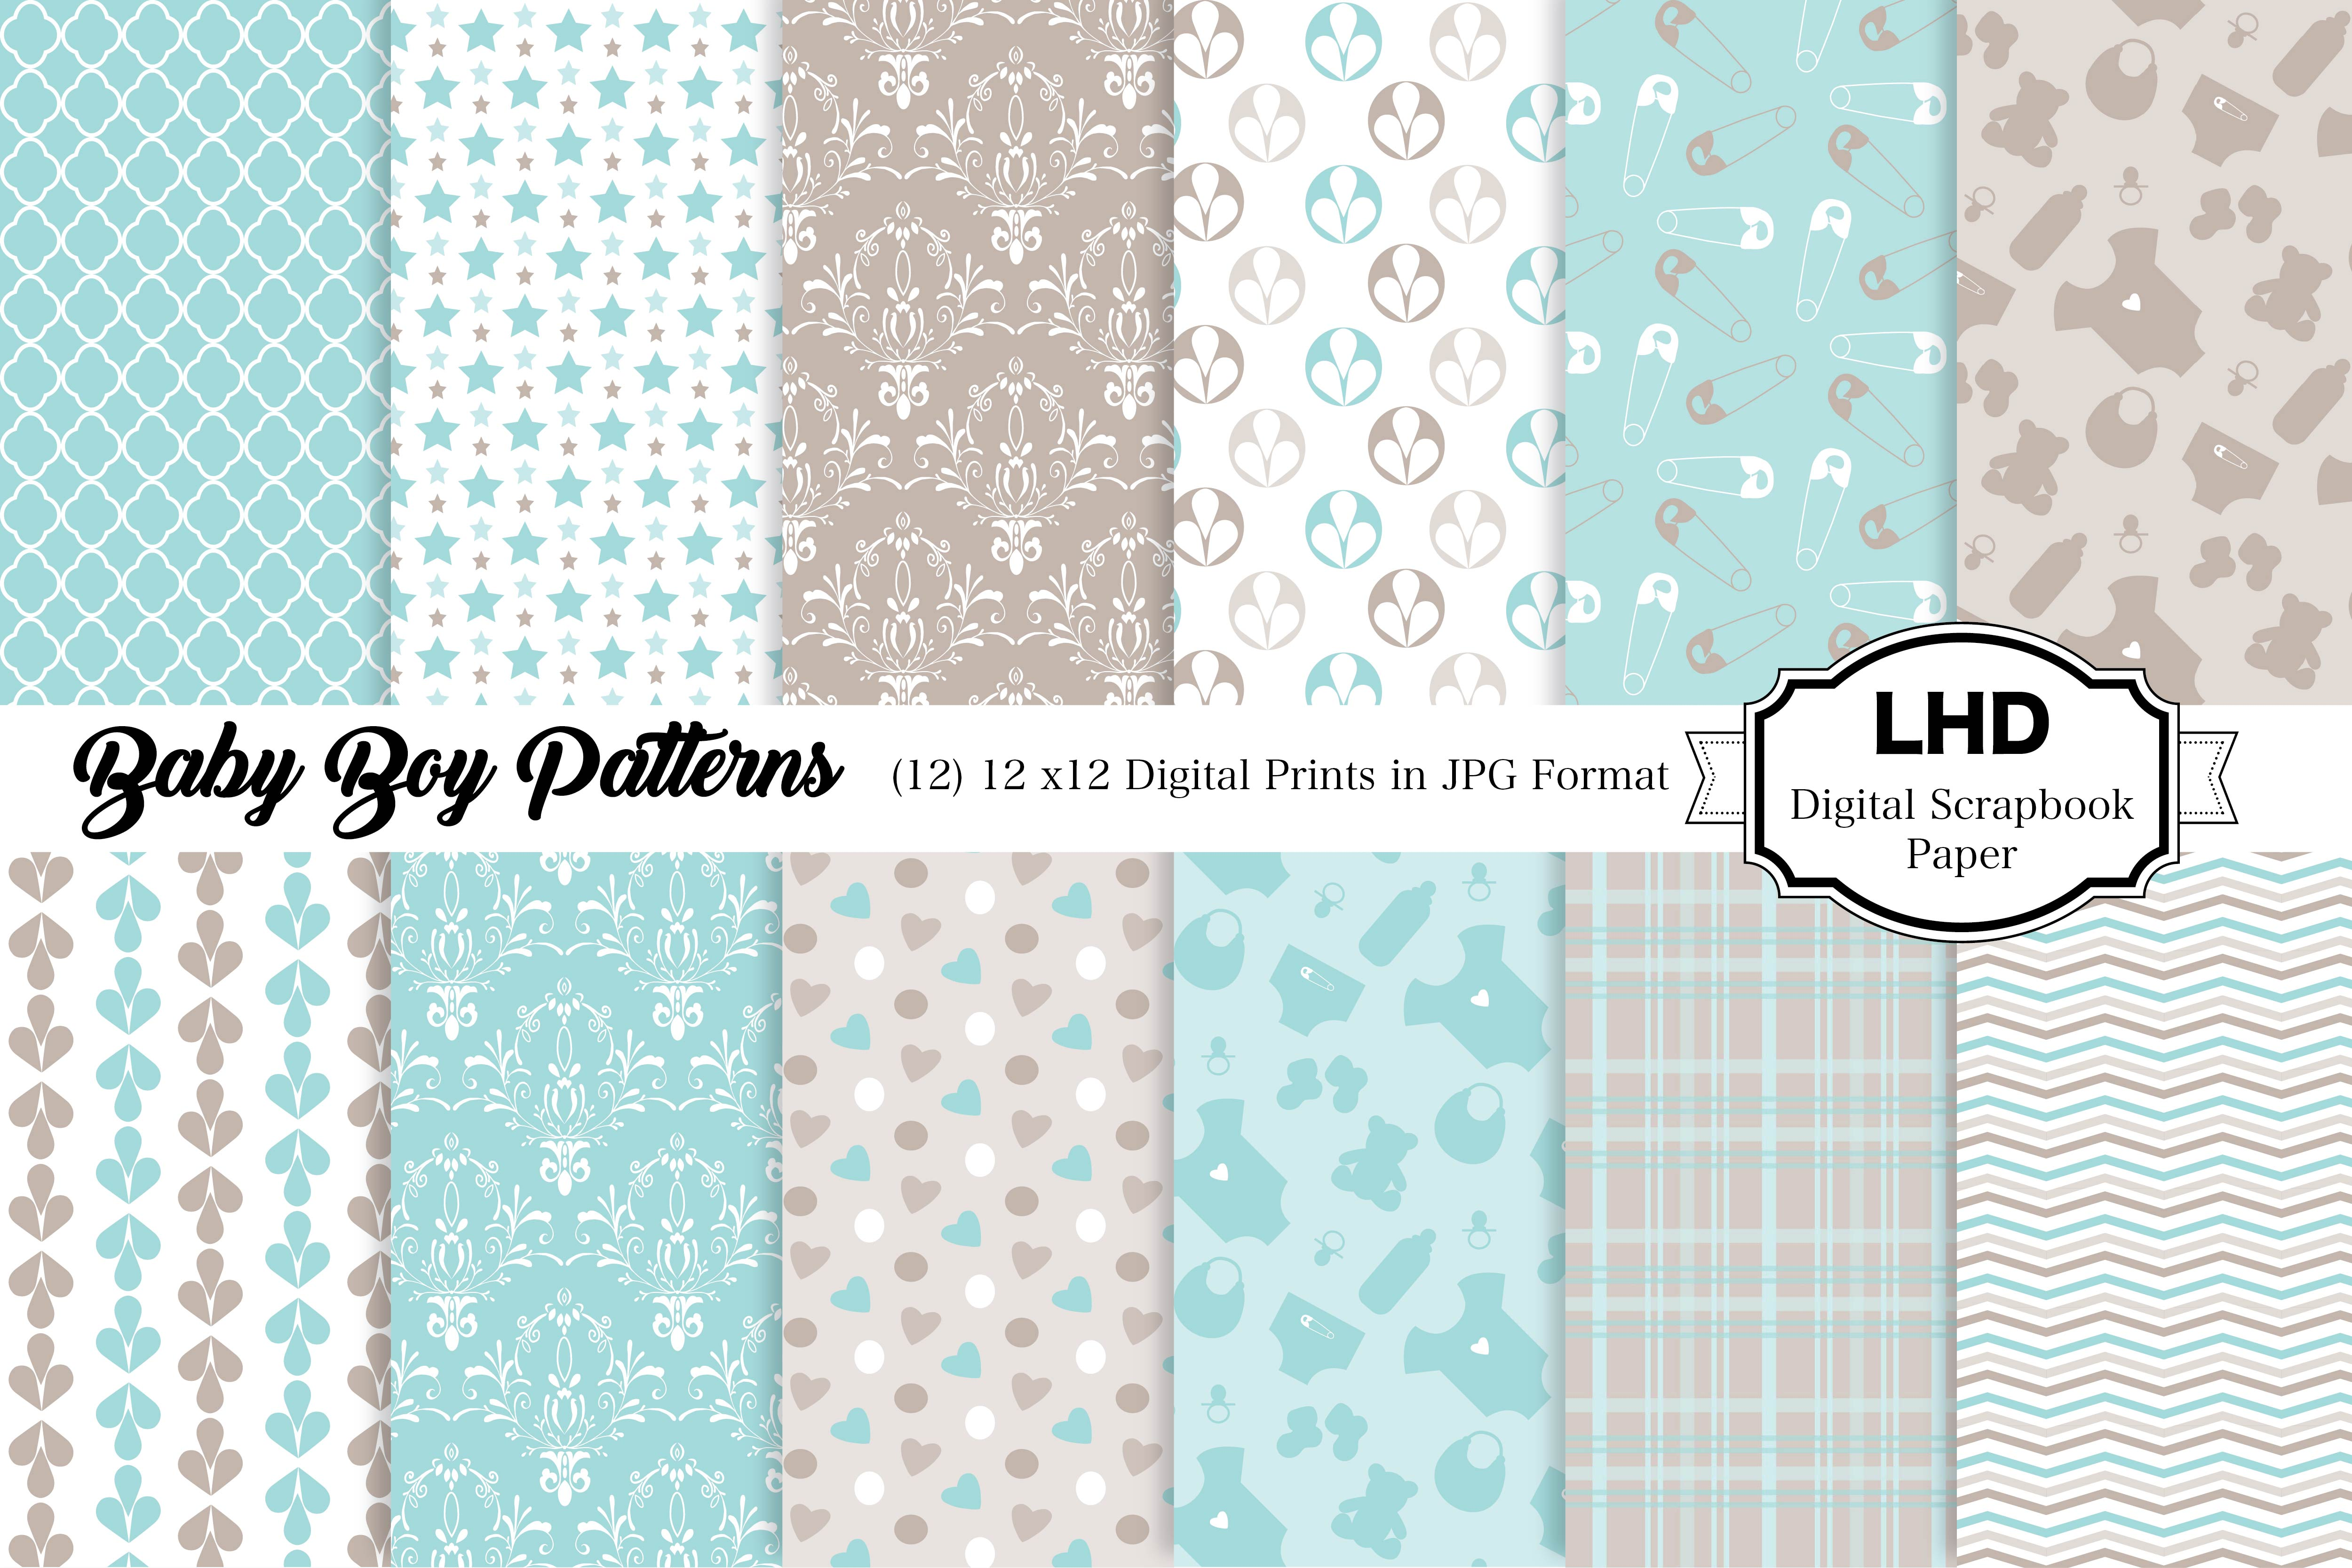 Download Free Baby Boy Patterns Digital Papers Graphic By Leskahamatydesign for Cricut Explore, Silhouette and other cutting machines.